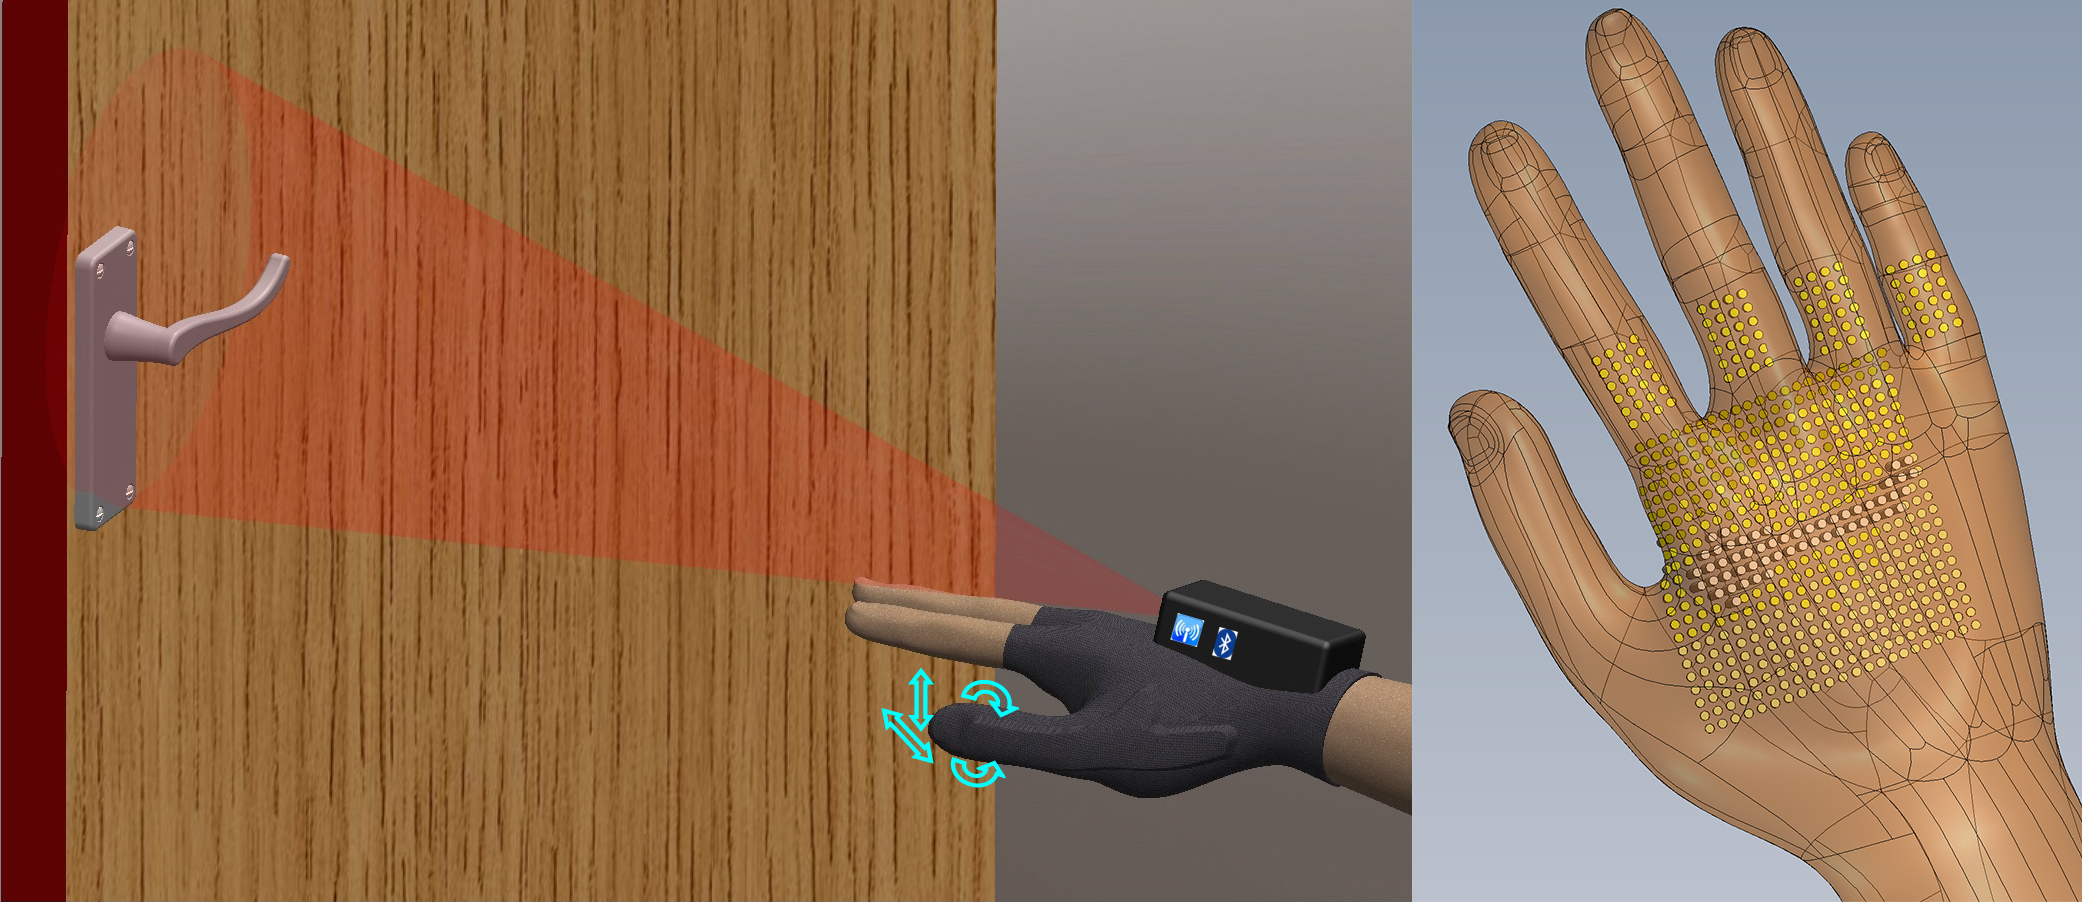 Illustration of assistive device to help the visually impaired grasp objects